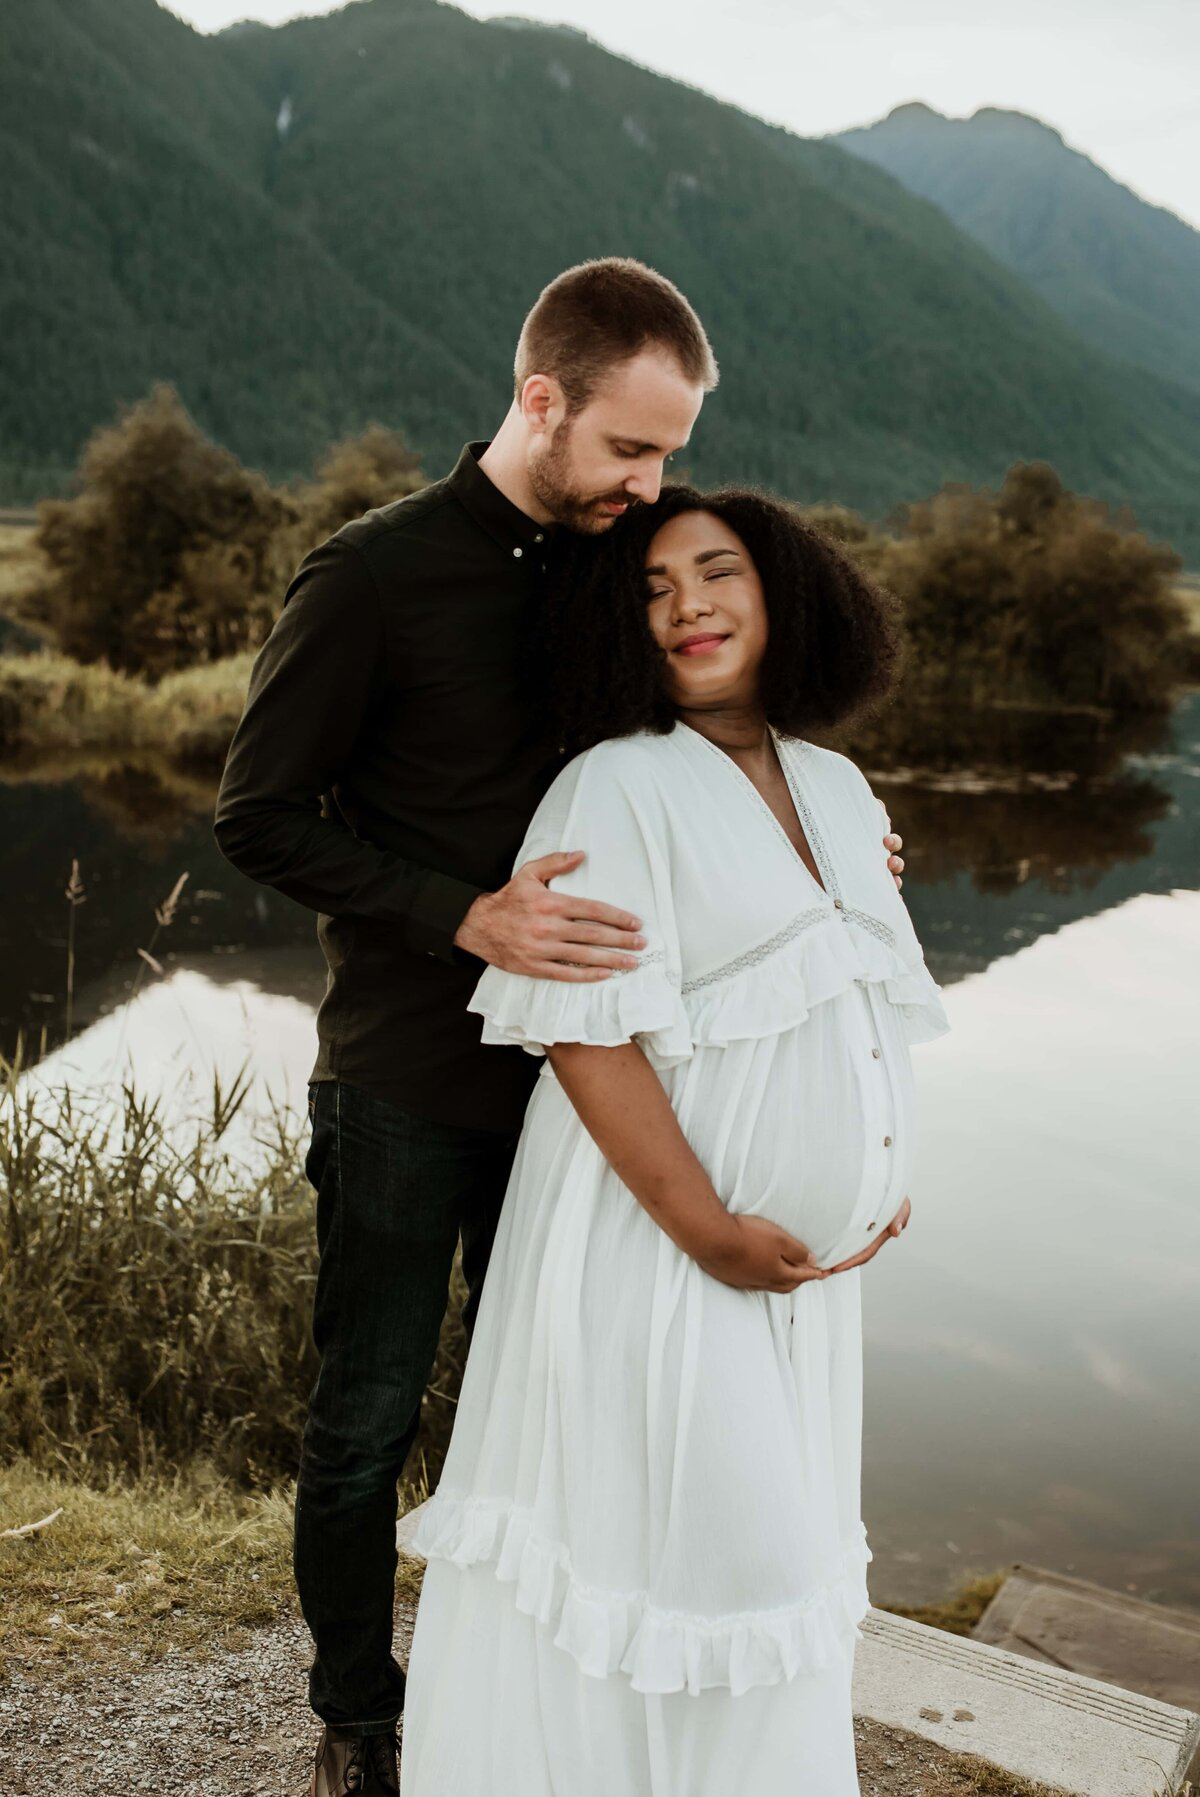 Emily-maternity-photography-session-Pitt-Meadows86